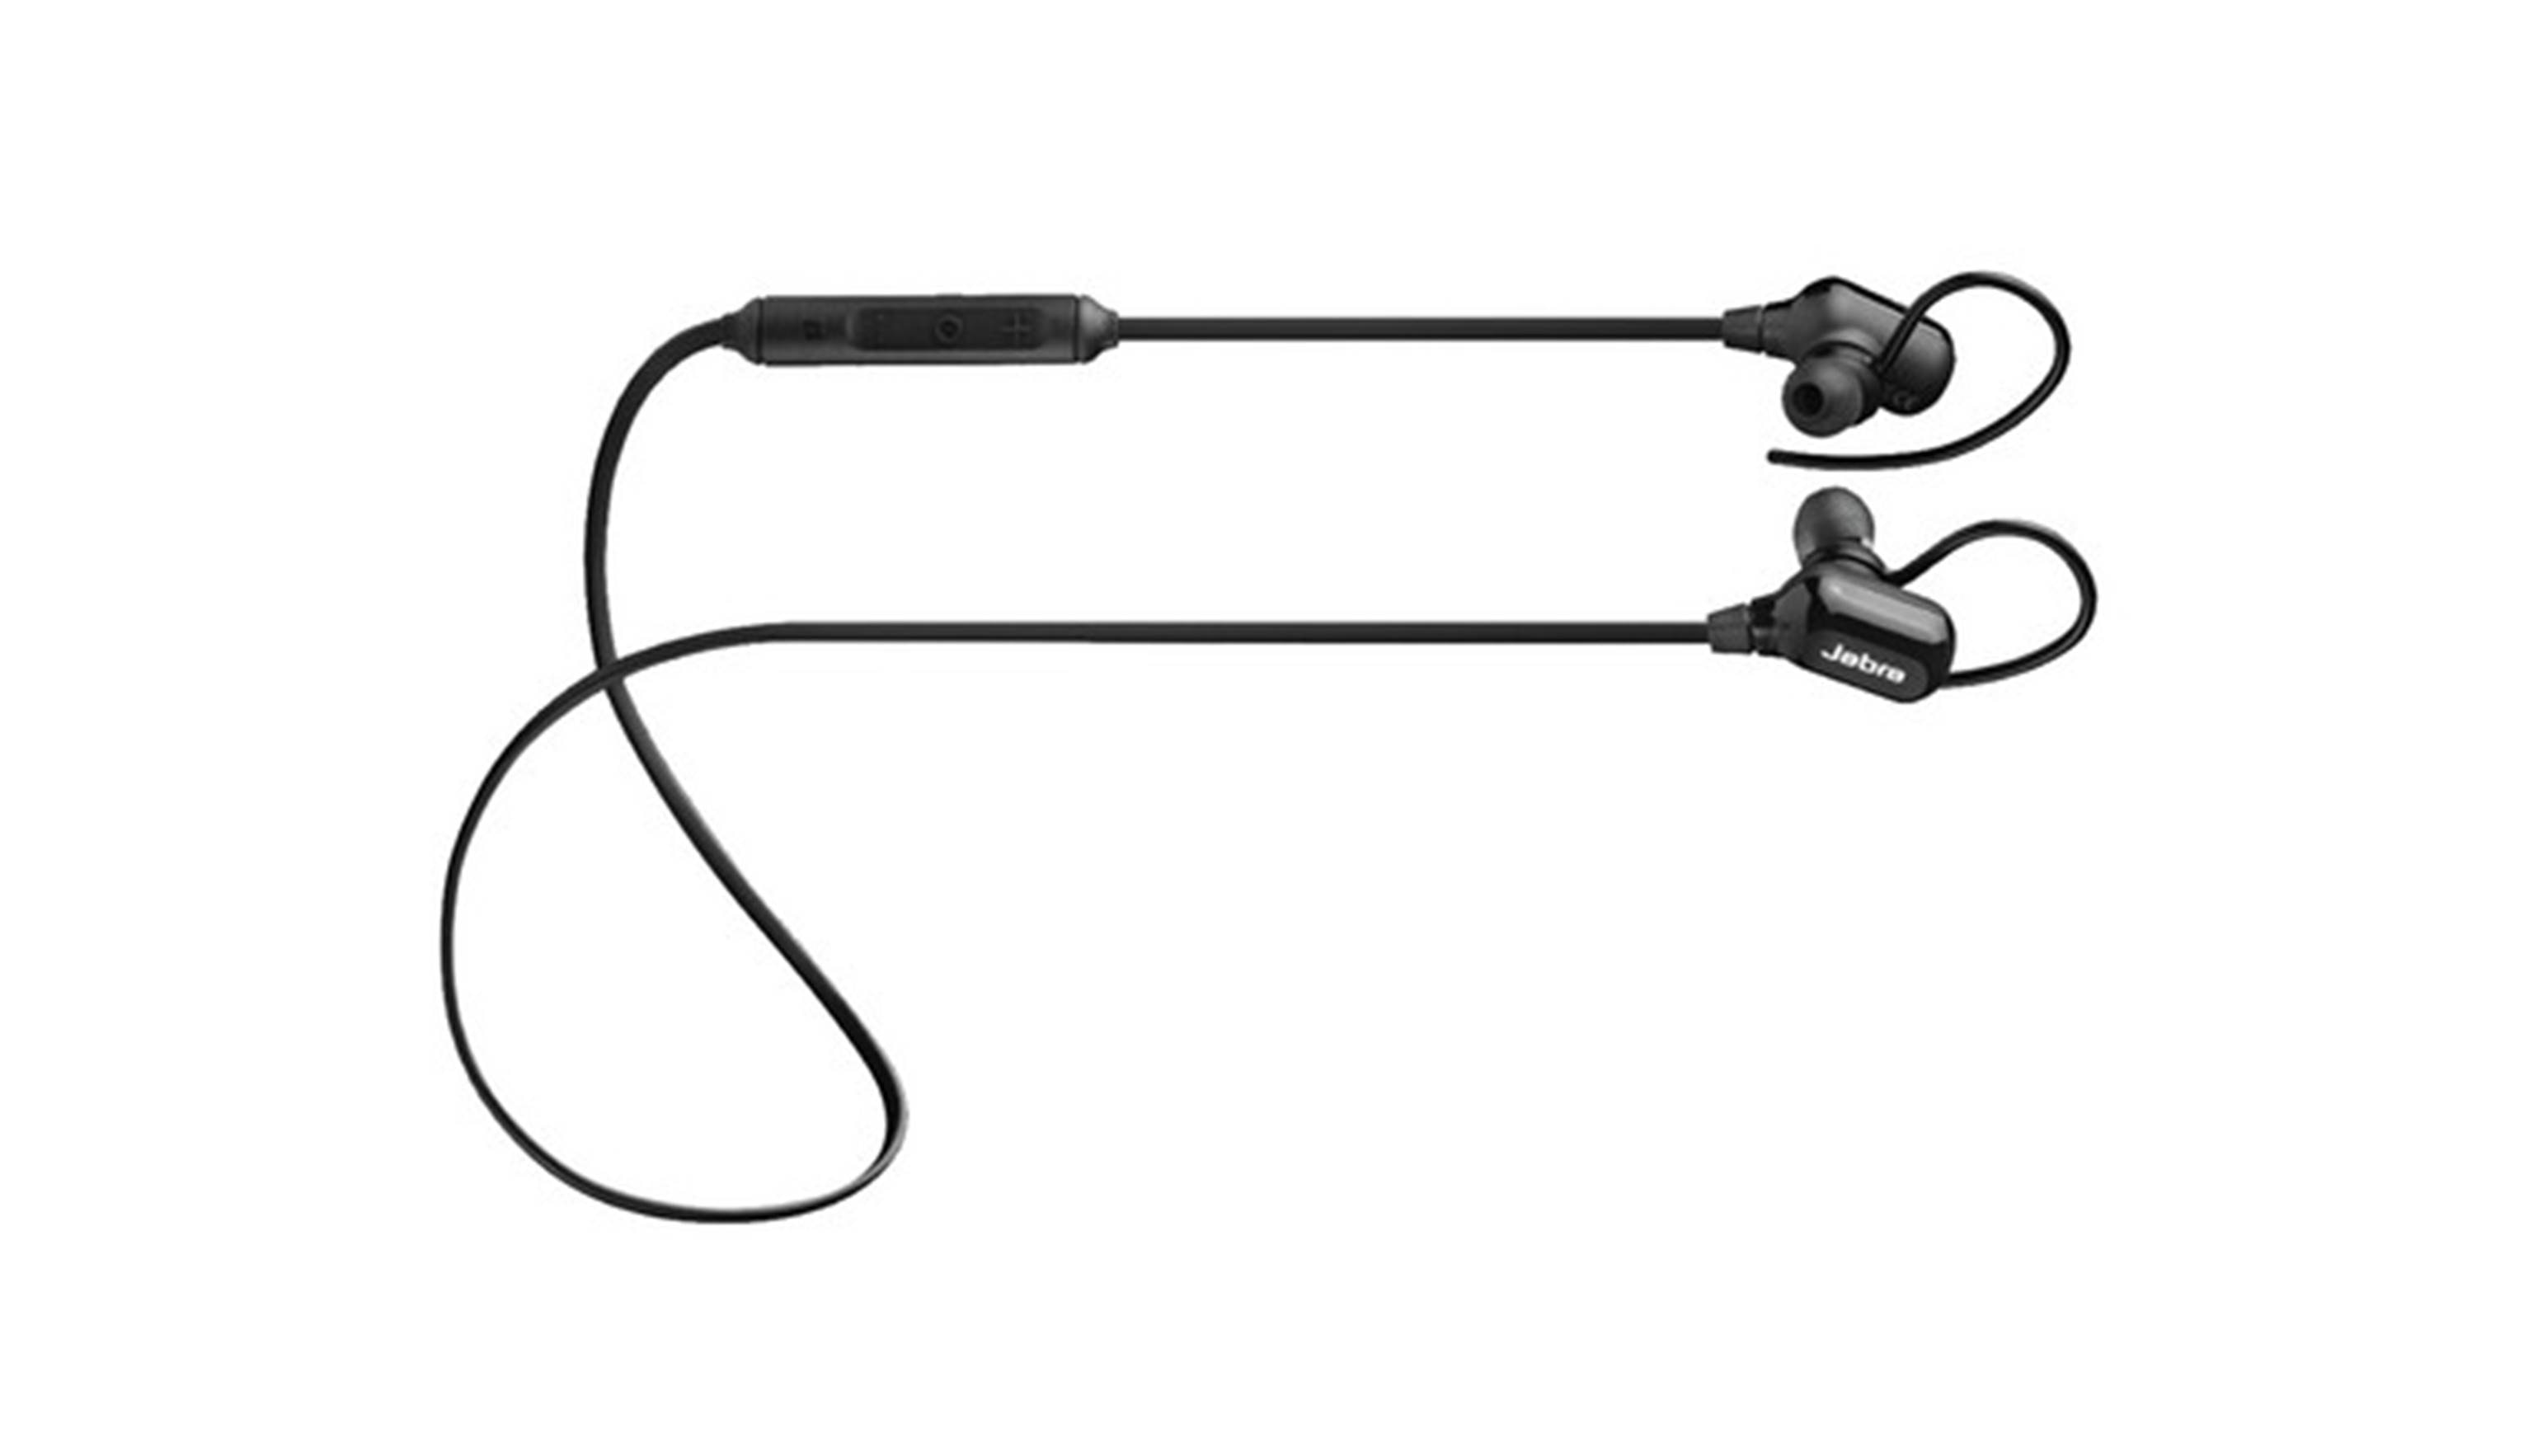 Jabra Bluetooth Halo Free Earphone-View 2